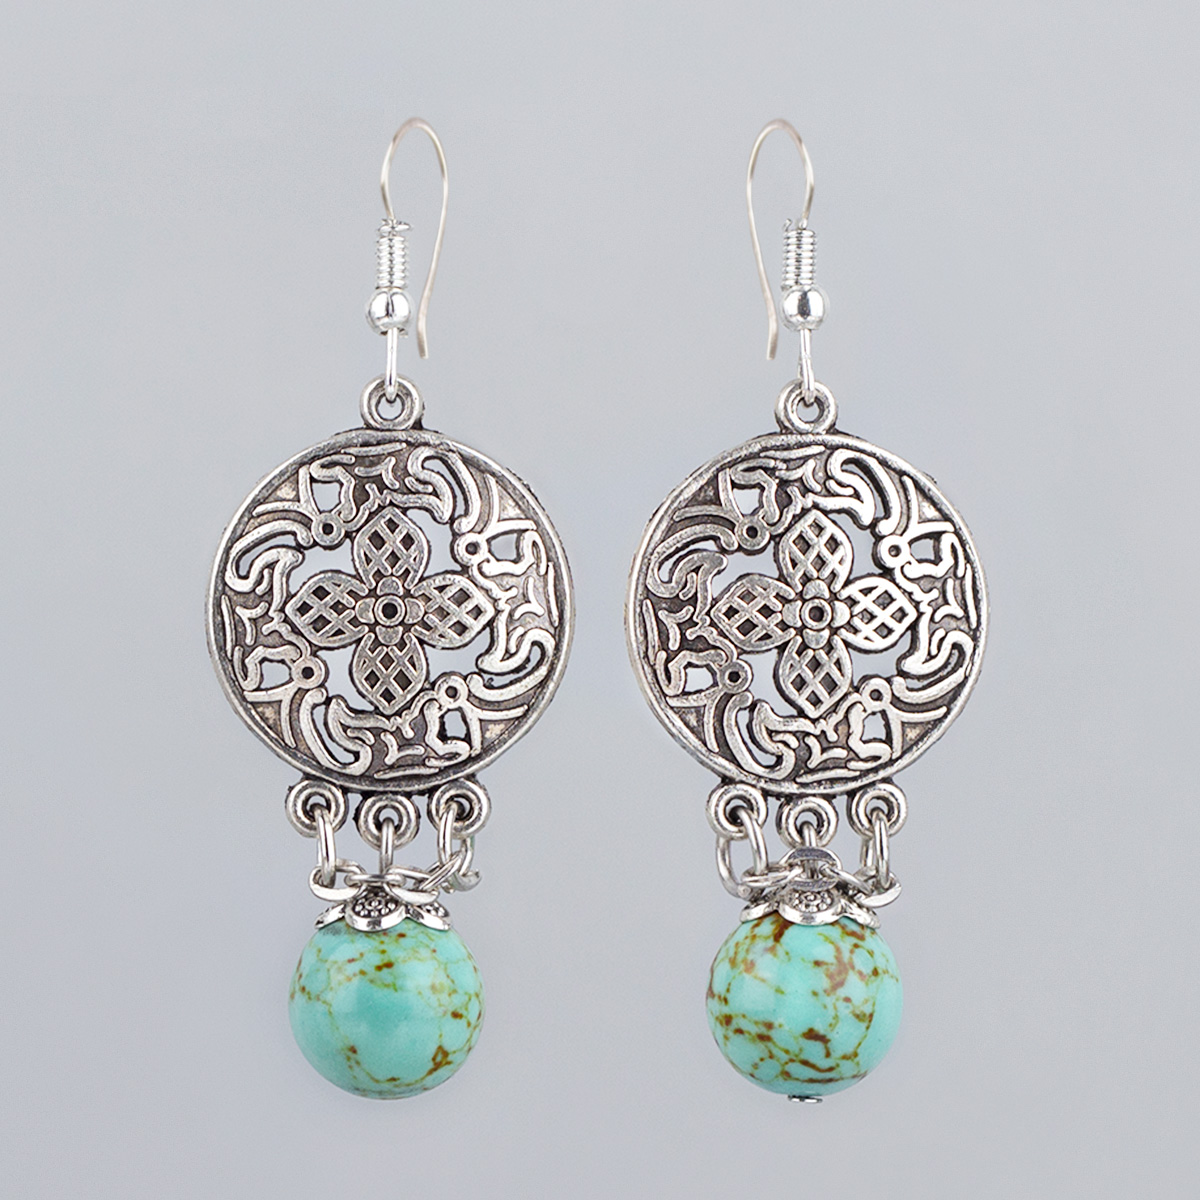 Vintage earrings with turquoise stone, 6 cm